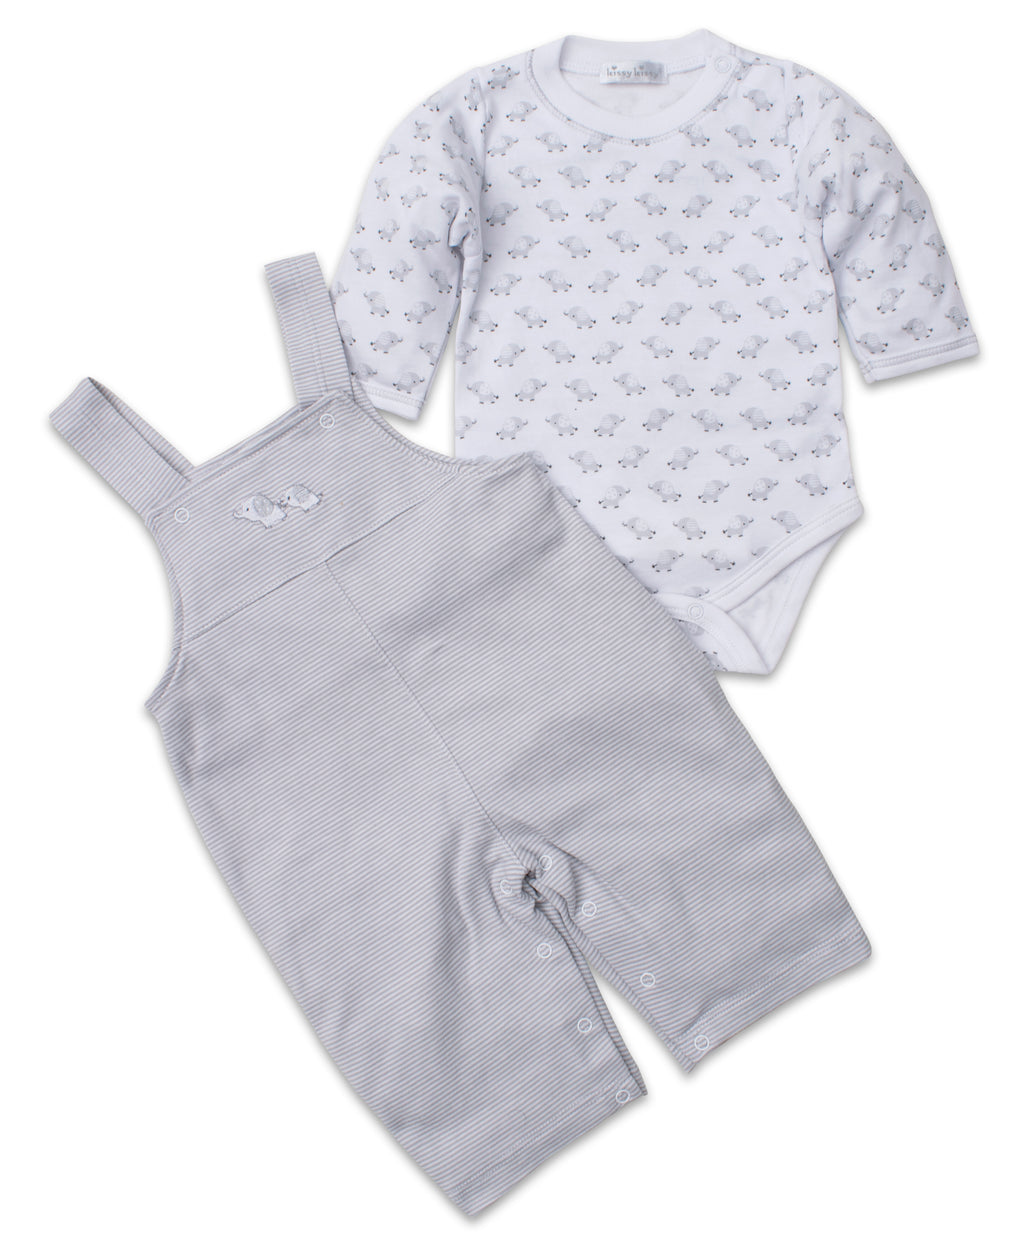 Baby Trunks Silver Overall Set